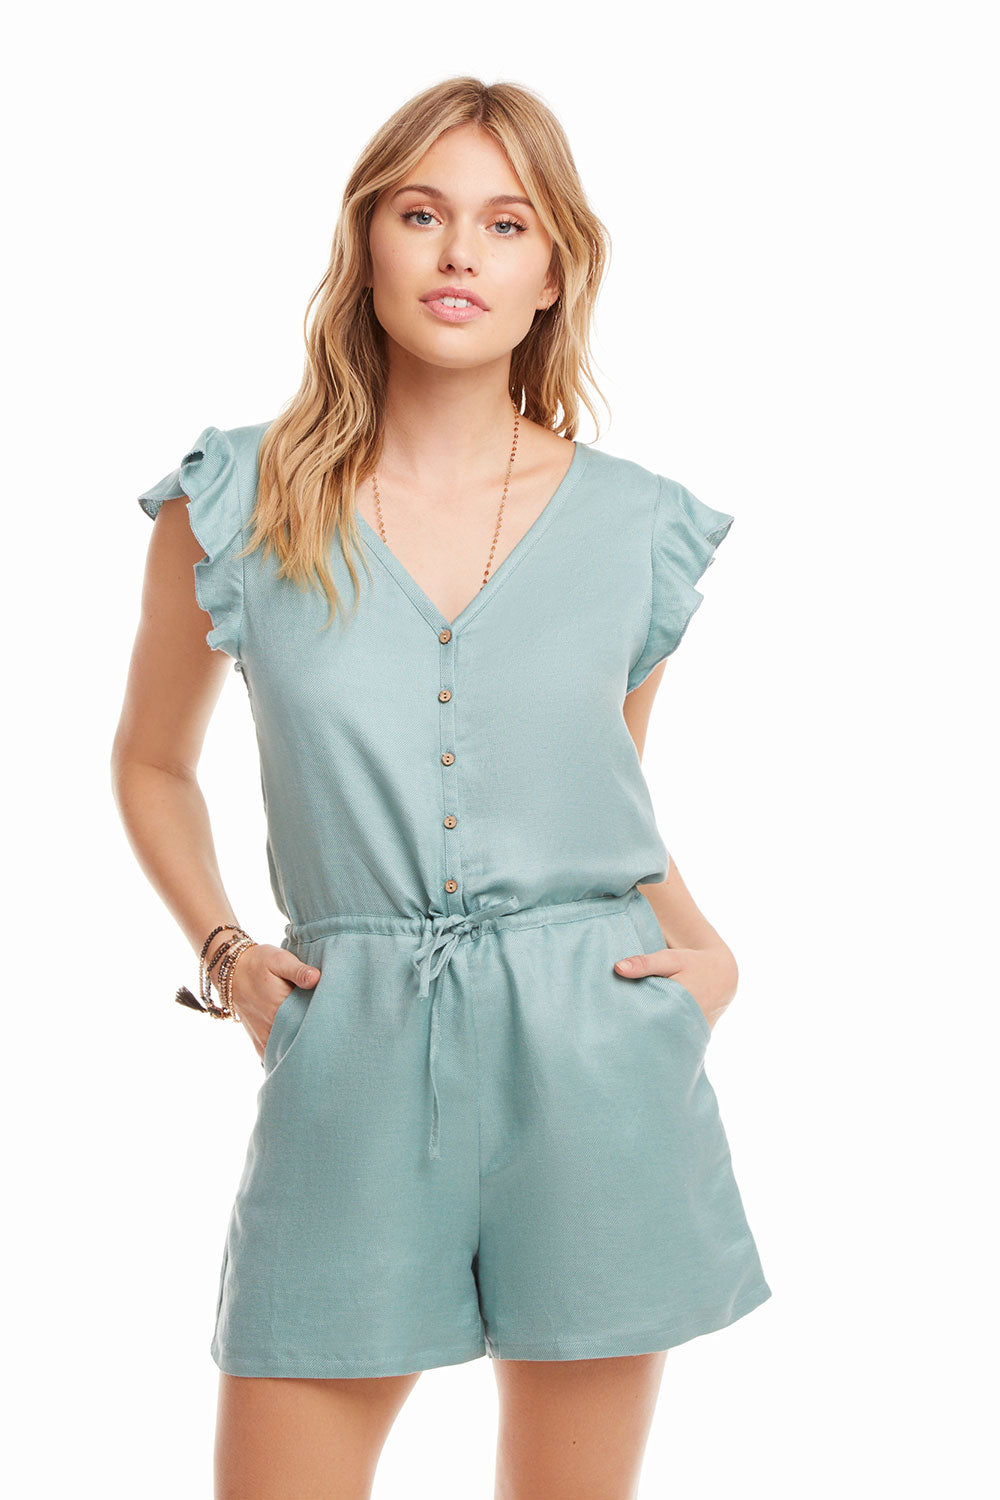 Beachy Linen Flutter Sleeve Button Down Shorts Romper, WOMENS, chaserbrand.com,chaser clothing,chaser apparel,chaser los angeles